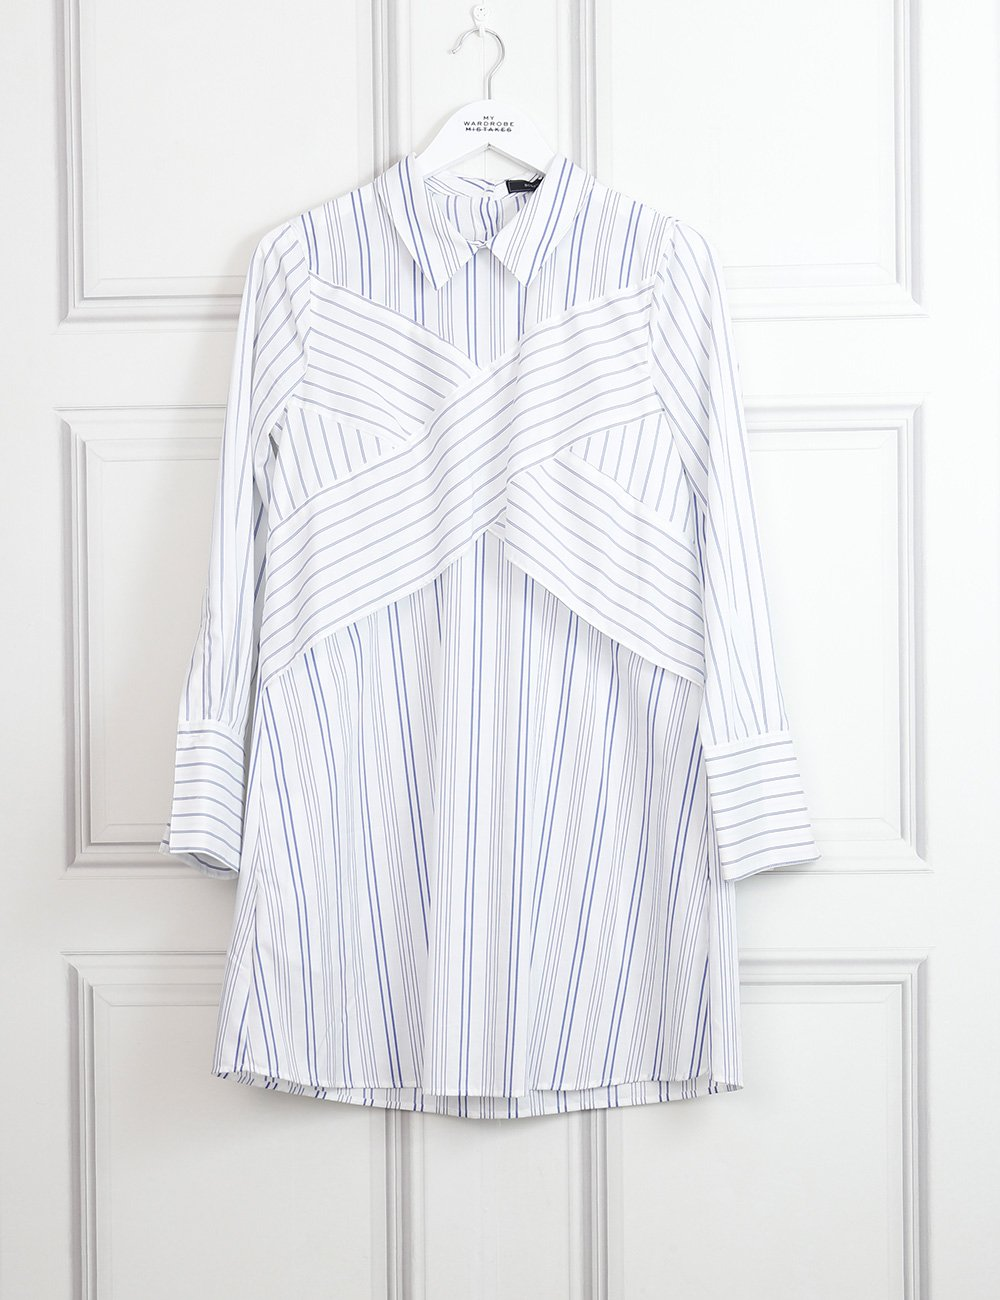 BCBG CLOTHING 12UK-44IT-40FR / Multicolour BCBG Azriel striped shirt dress